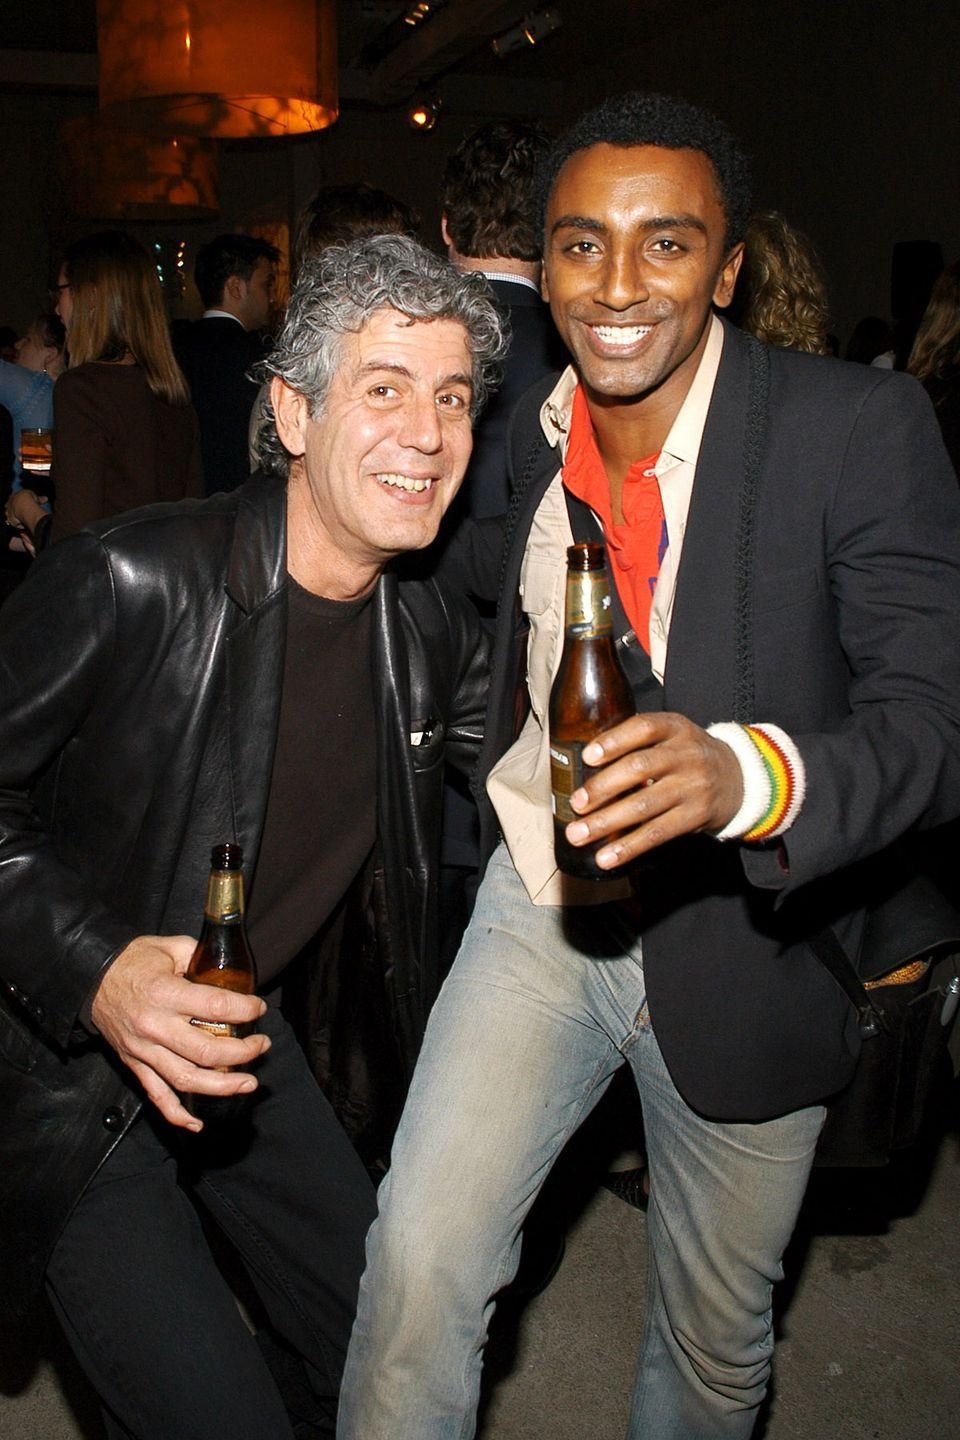 <p> Bourdain and Marcus Samuelsson, the chef behind Harlem's Red Rooster, pose for a picture during a <em>Food & Wine</em> magazine event in New York on March 29, 2005.</p>